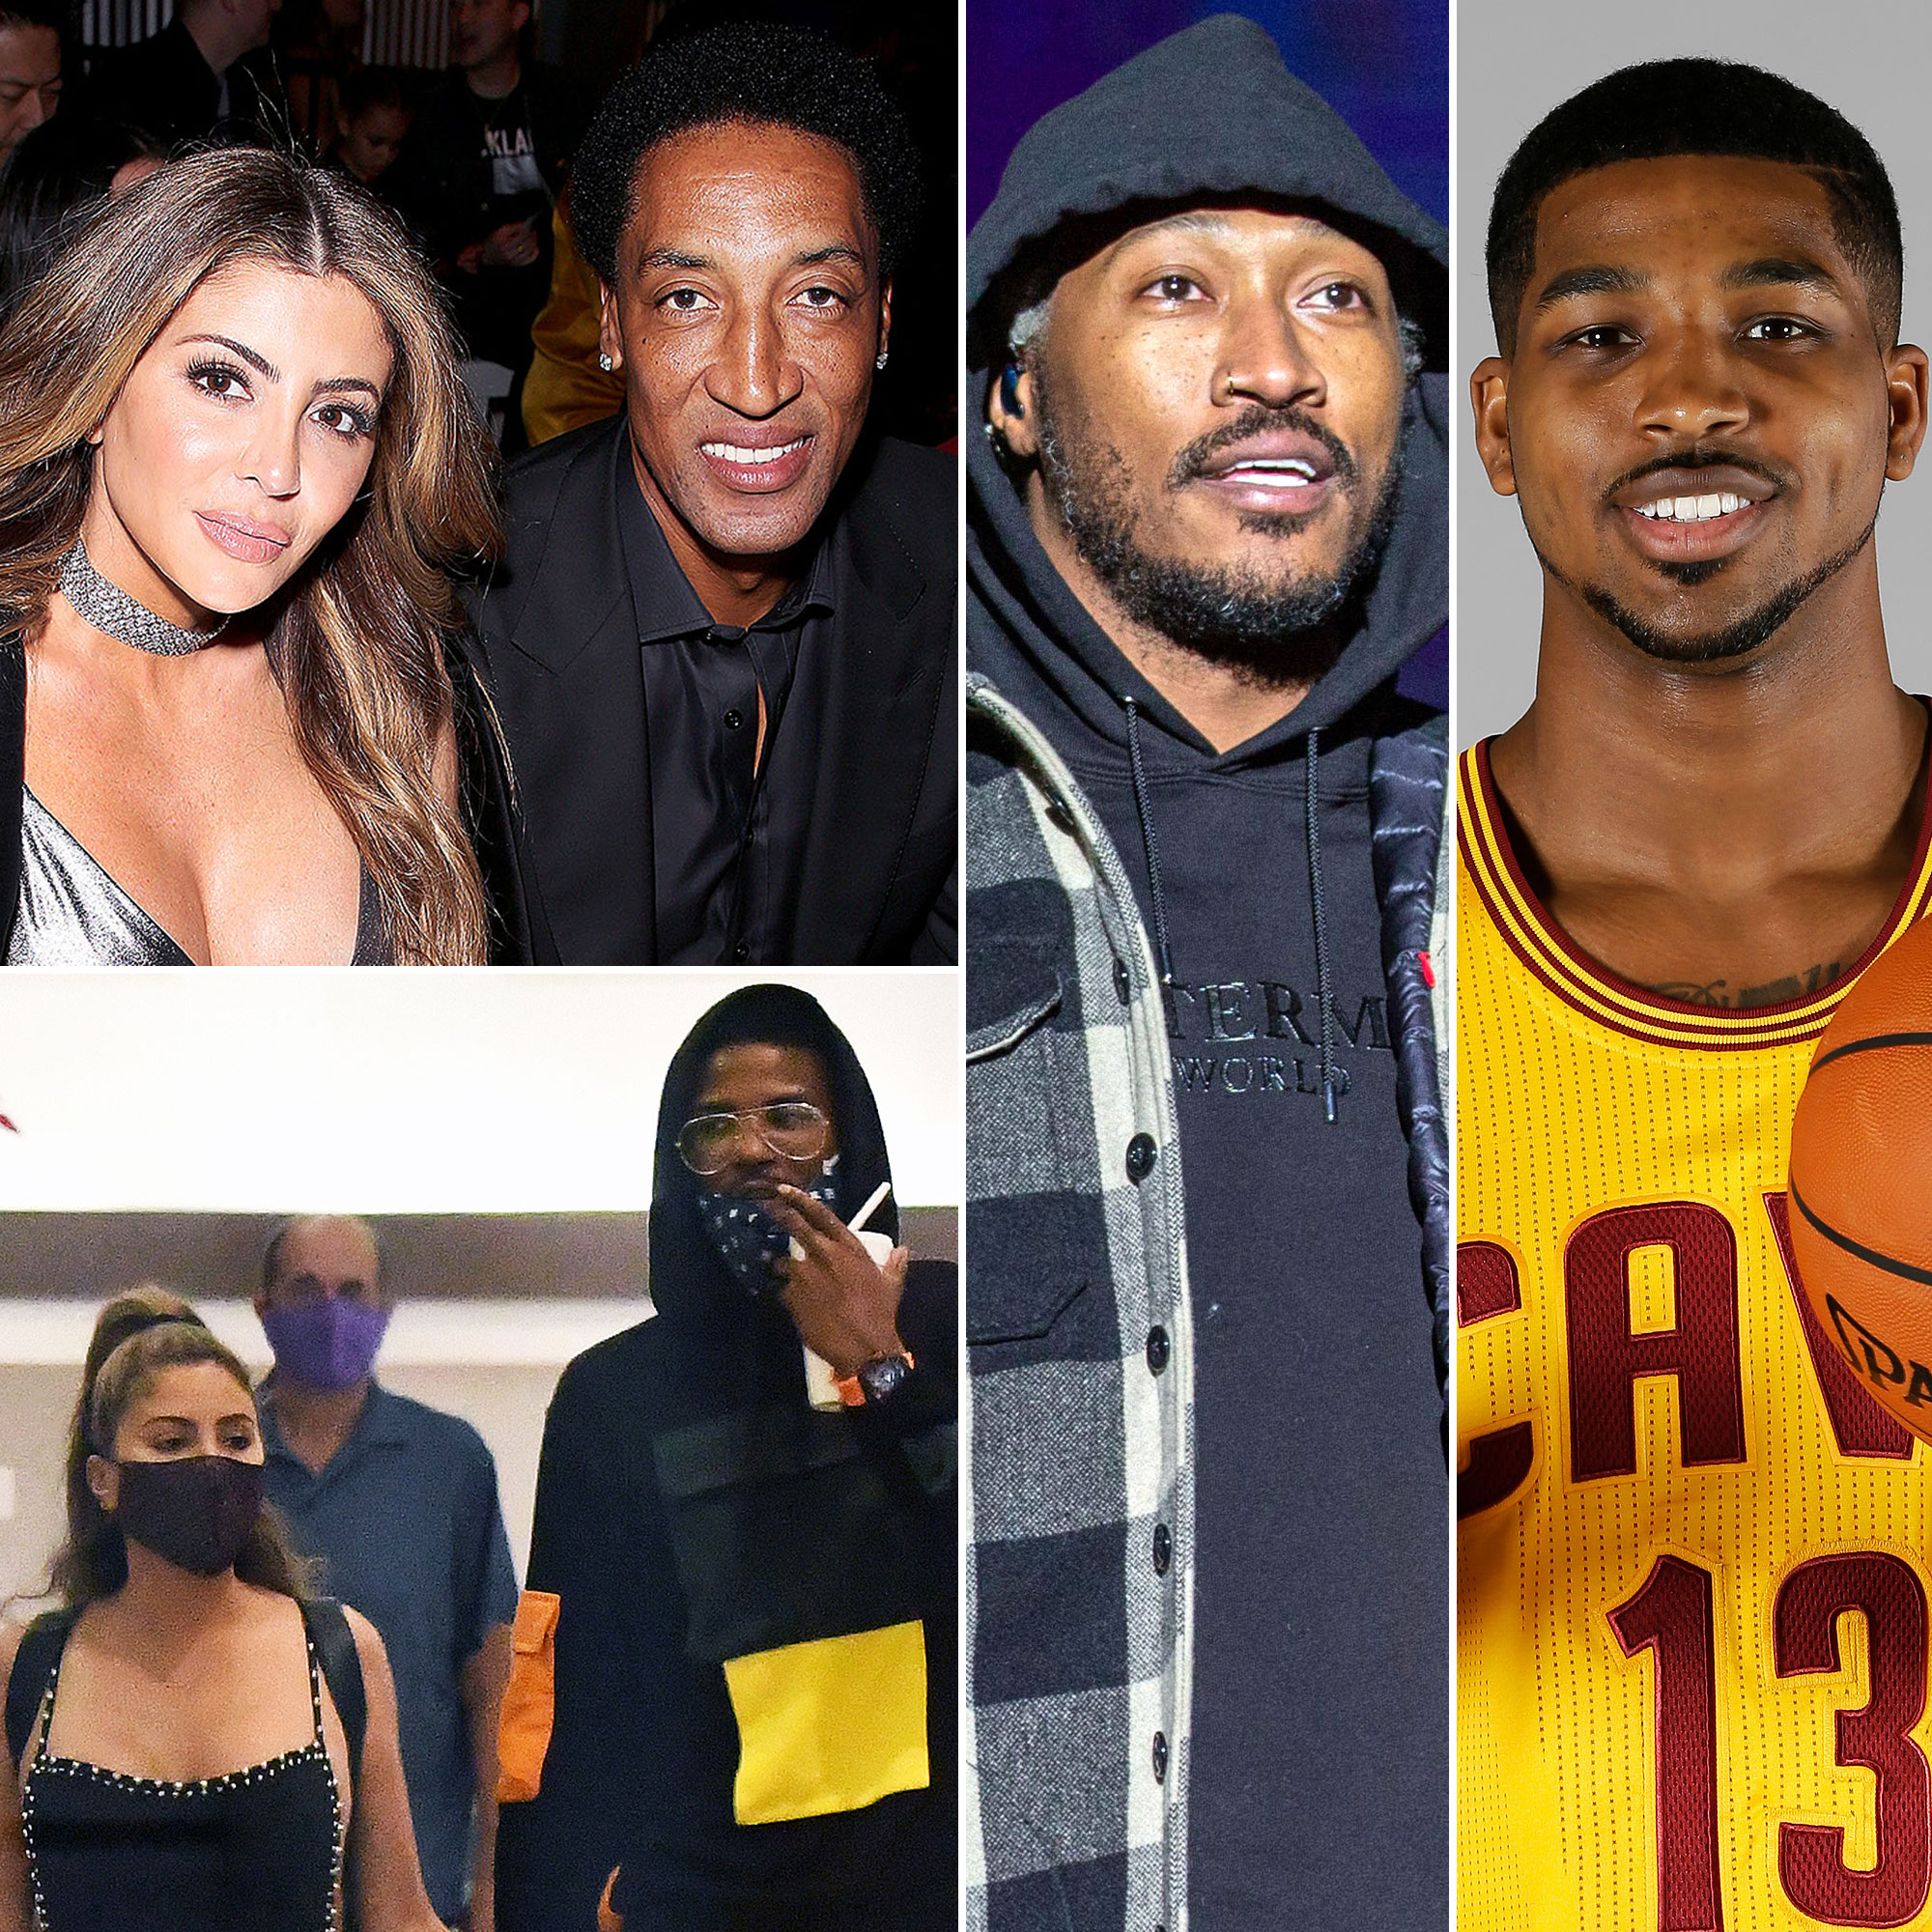 Larsa Pippen's Dating History: Scottie Pippen, Future and More